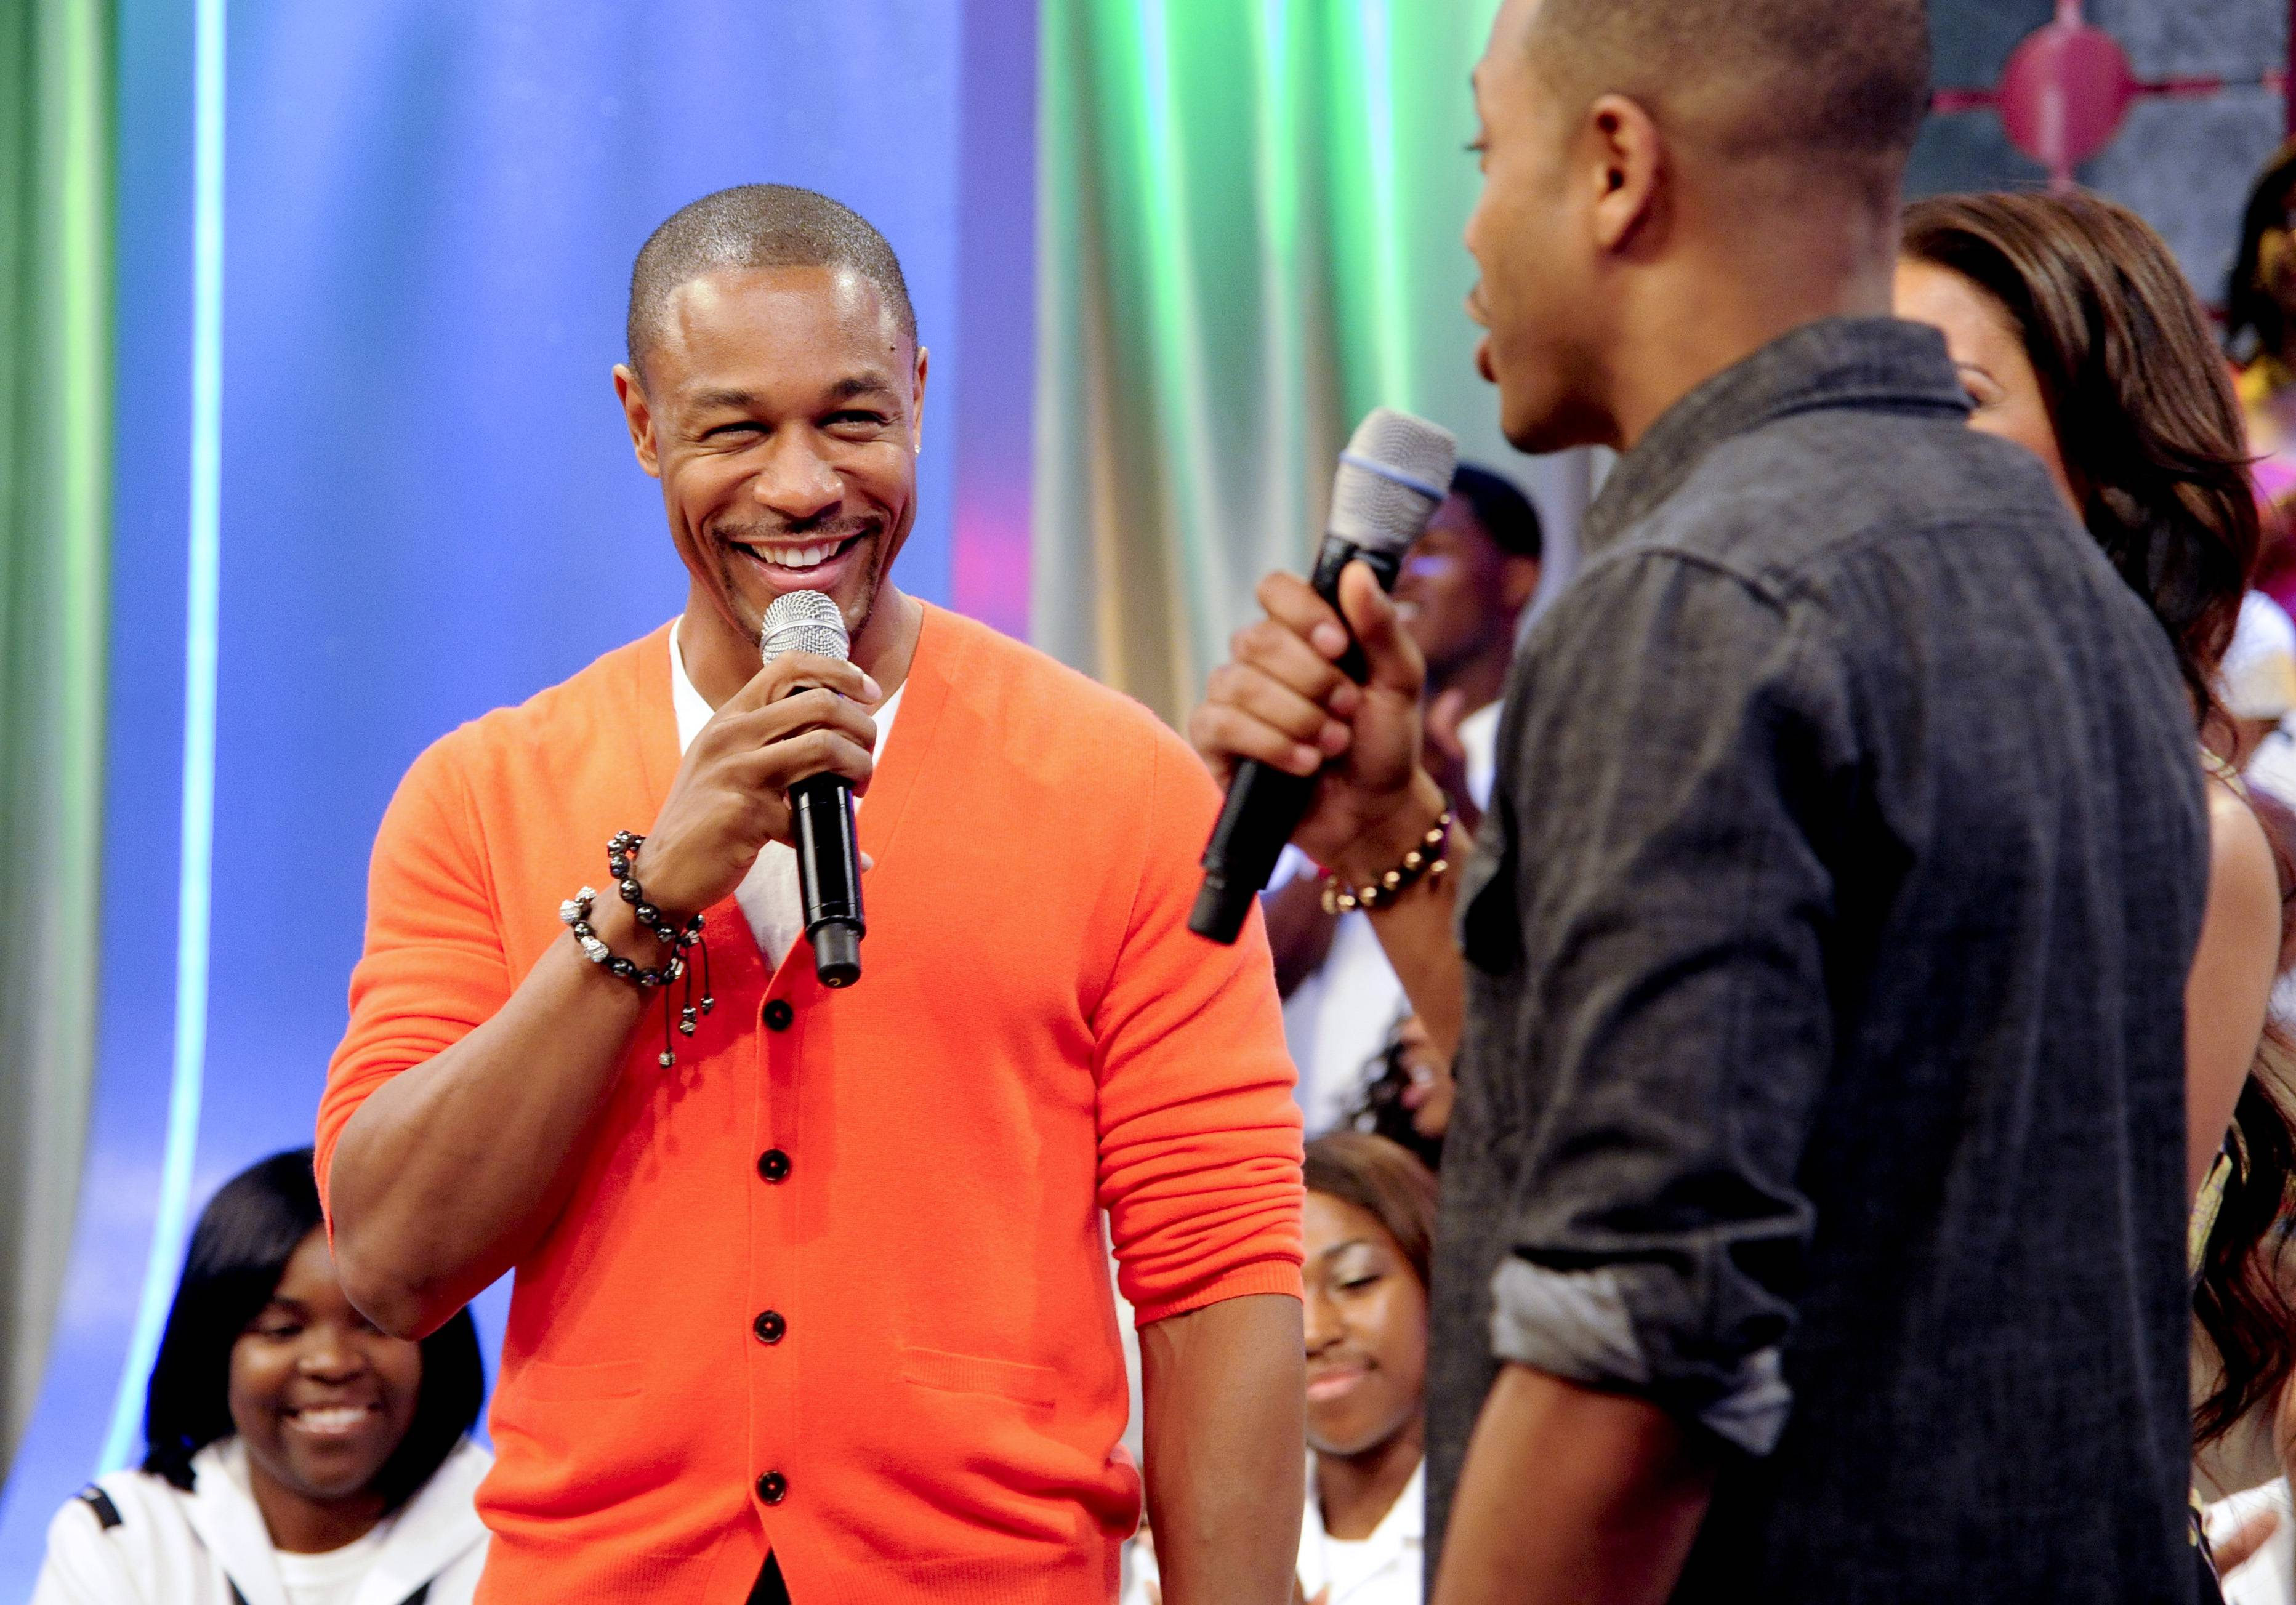 Wave - Tank takes the stage at 106 & Park, May 29, 2012. (Photo: John Ricard / BET)